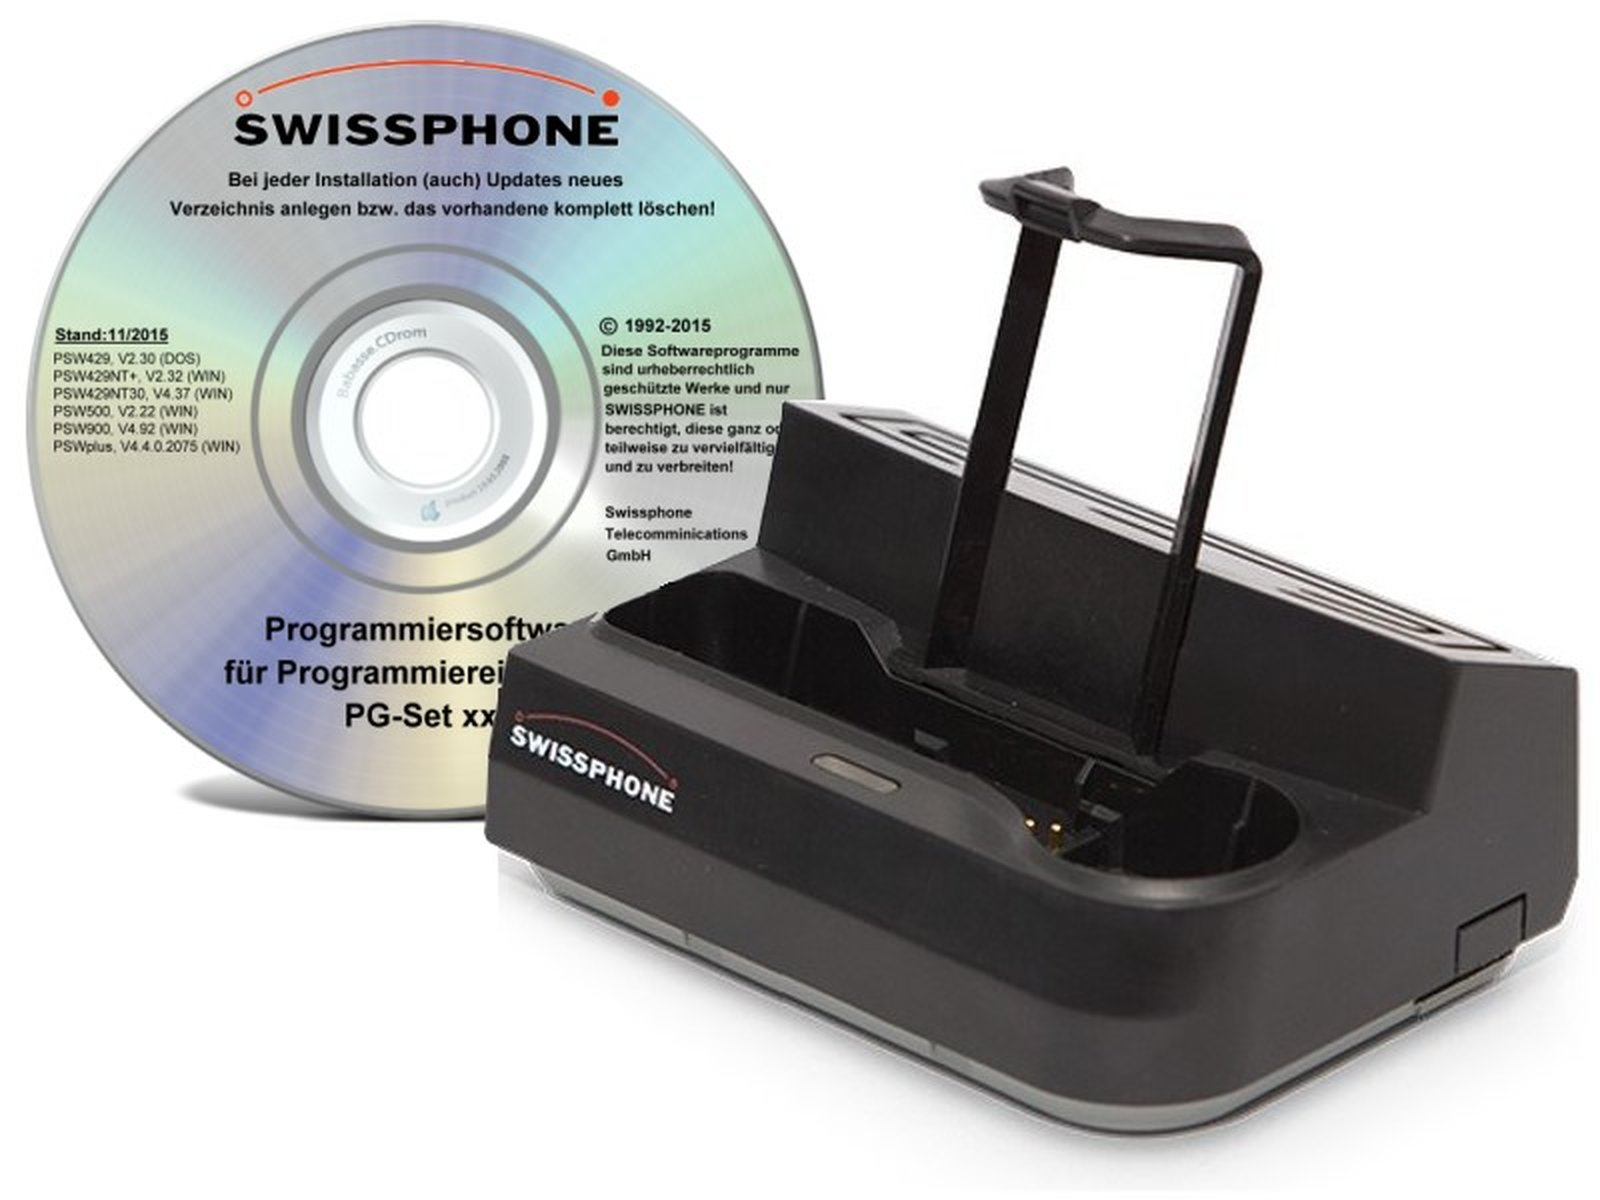 Swissphone PG-Set s.QUAD mit Software